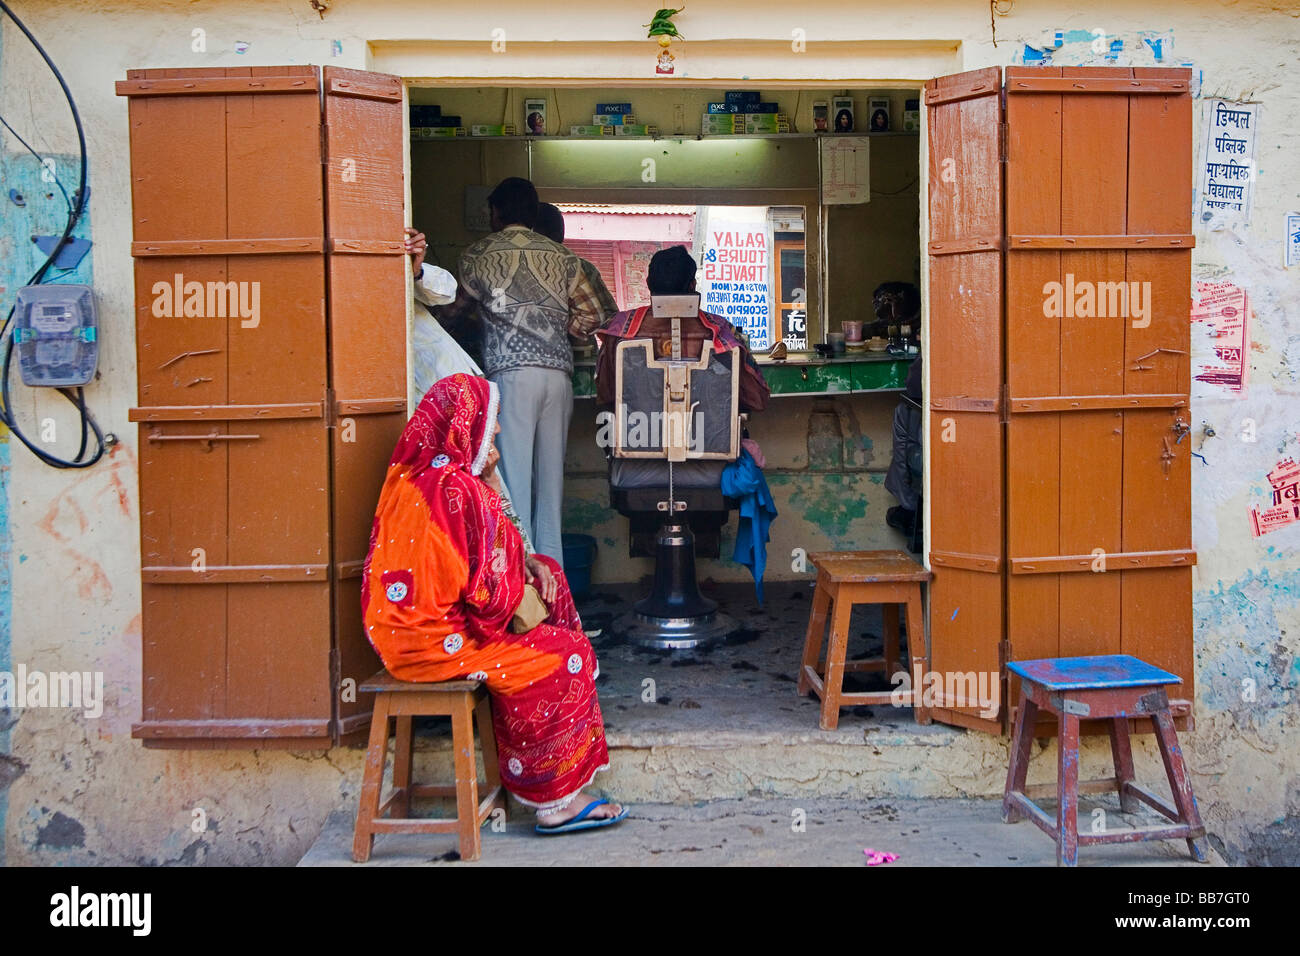 Indian barbershop, North India, India, Asia - Stock Image